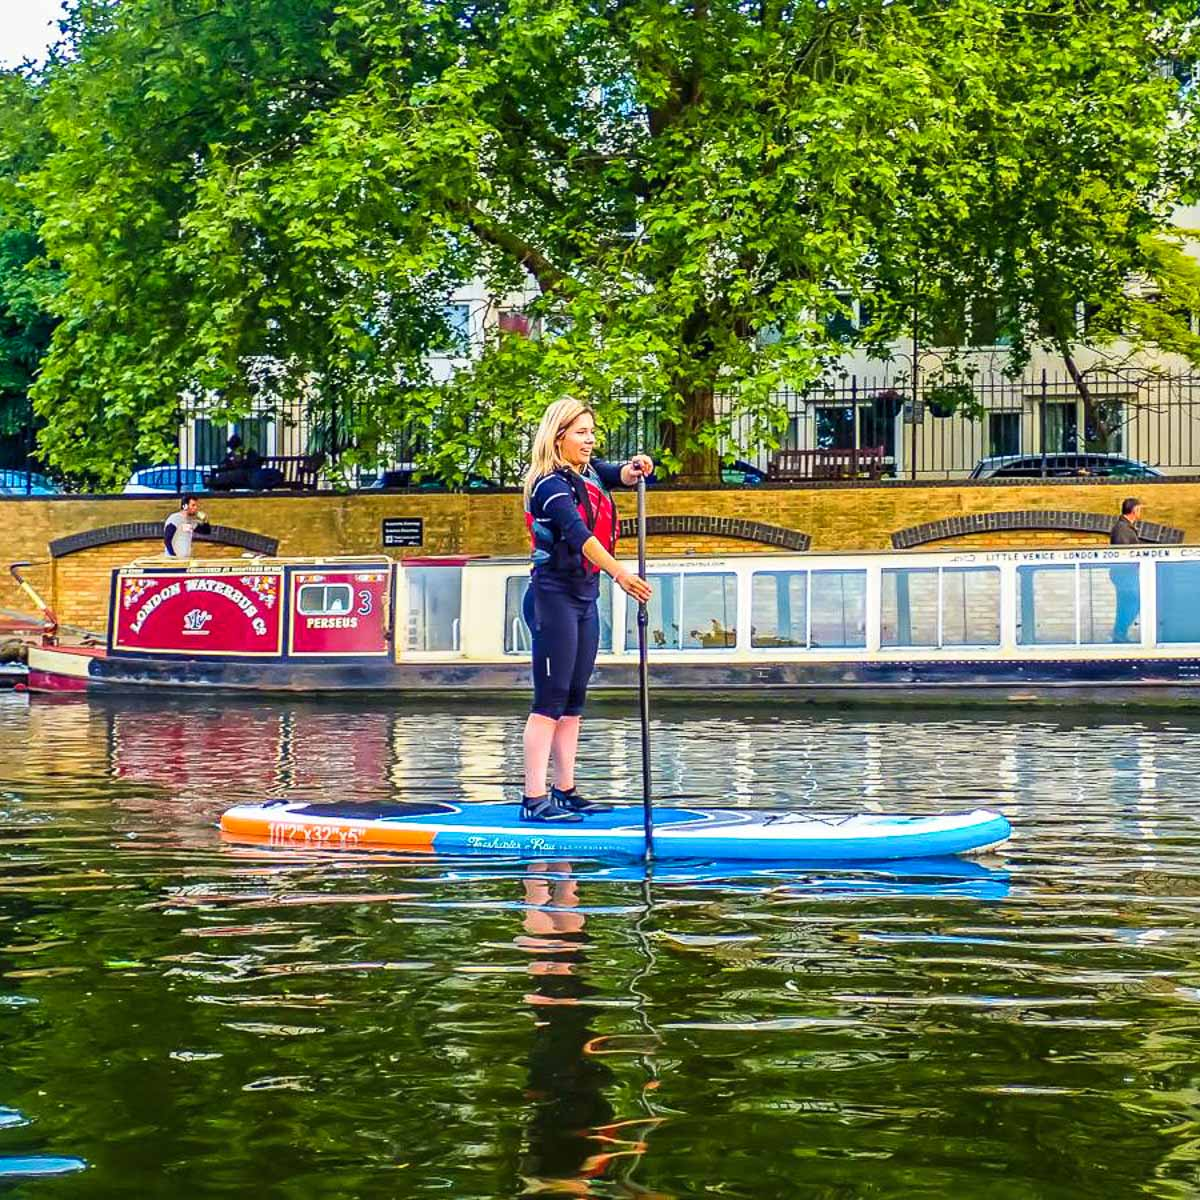 INTRODUCTION SESSION £49 - • Expert coaching to get you standing• Paddling and turning techniques• 1.5h - 2h guided SUP Tour• Board and Wetsuit hire• Join all future paddles for £26 for 2h or £28 for 3h